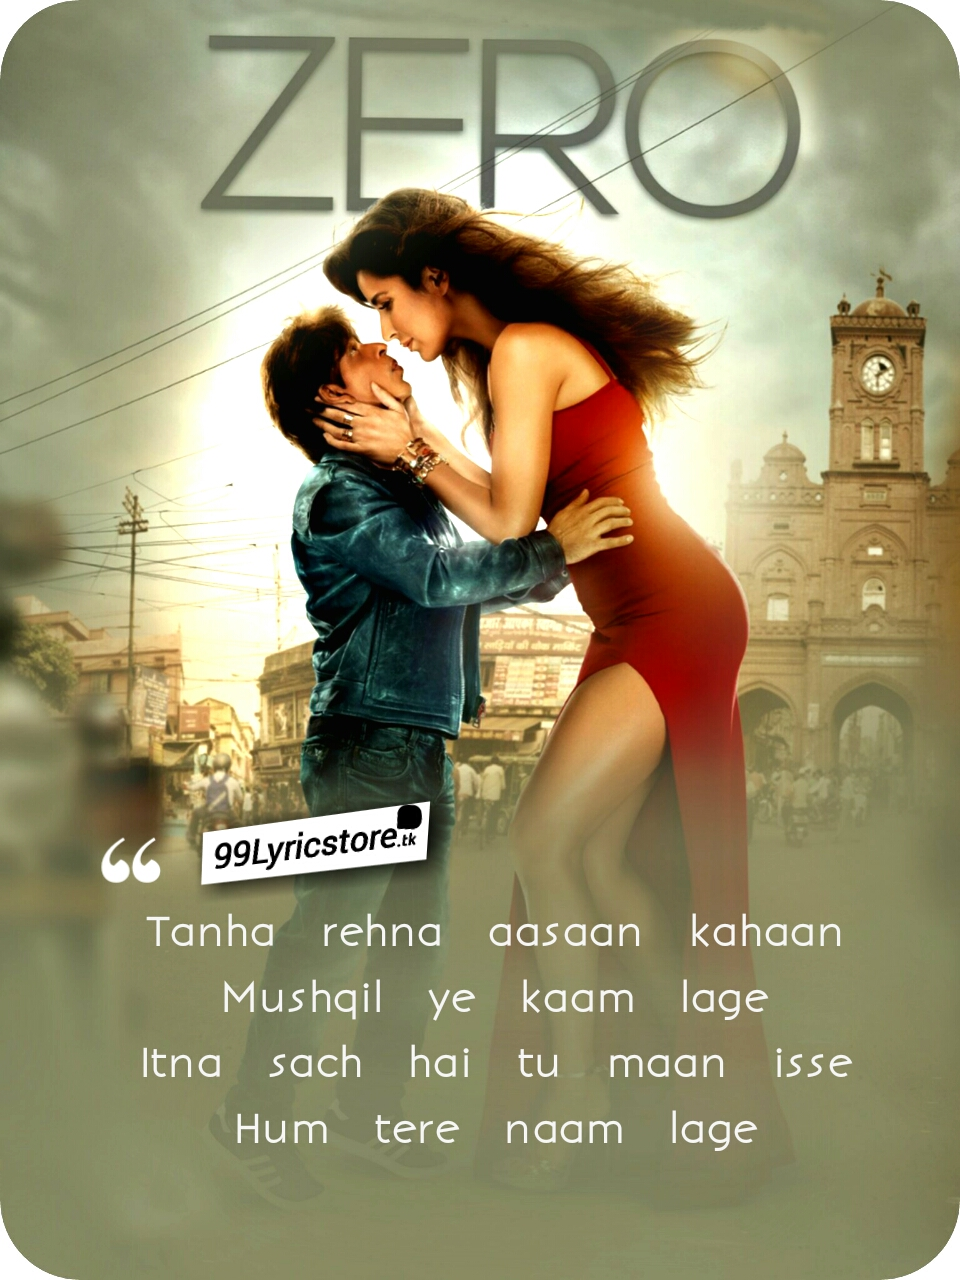 Zero movie Song Lyrics, Ann Bann Zero movie Song Lyrics, Latest Song Lyrics 2018, Latest Bollywood Movie Song Lyrics 2018, Shahrukh Khan Song Lyrics, Katrina Kaif Song Lyrics, Zero Ann Bann Lyrics, Ann Bann Lyrics Zero, Kunal Ganjawala Song Lyrics Zero, Love Song Lyrics, Zero movie Song images